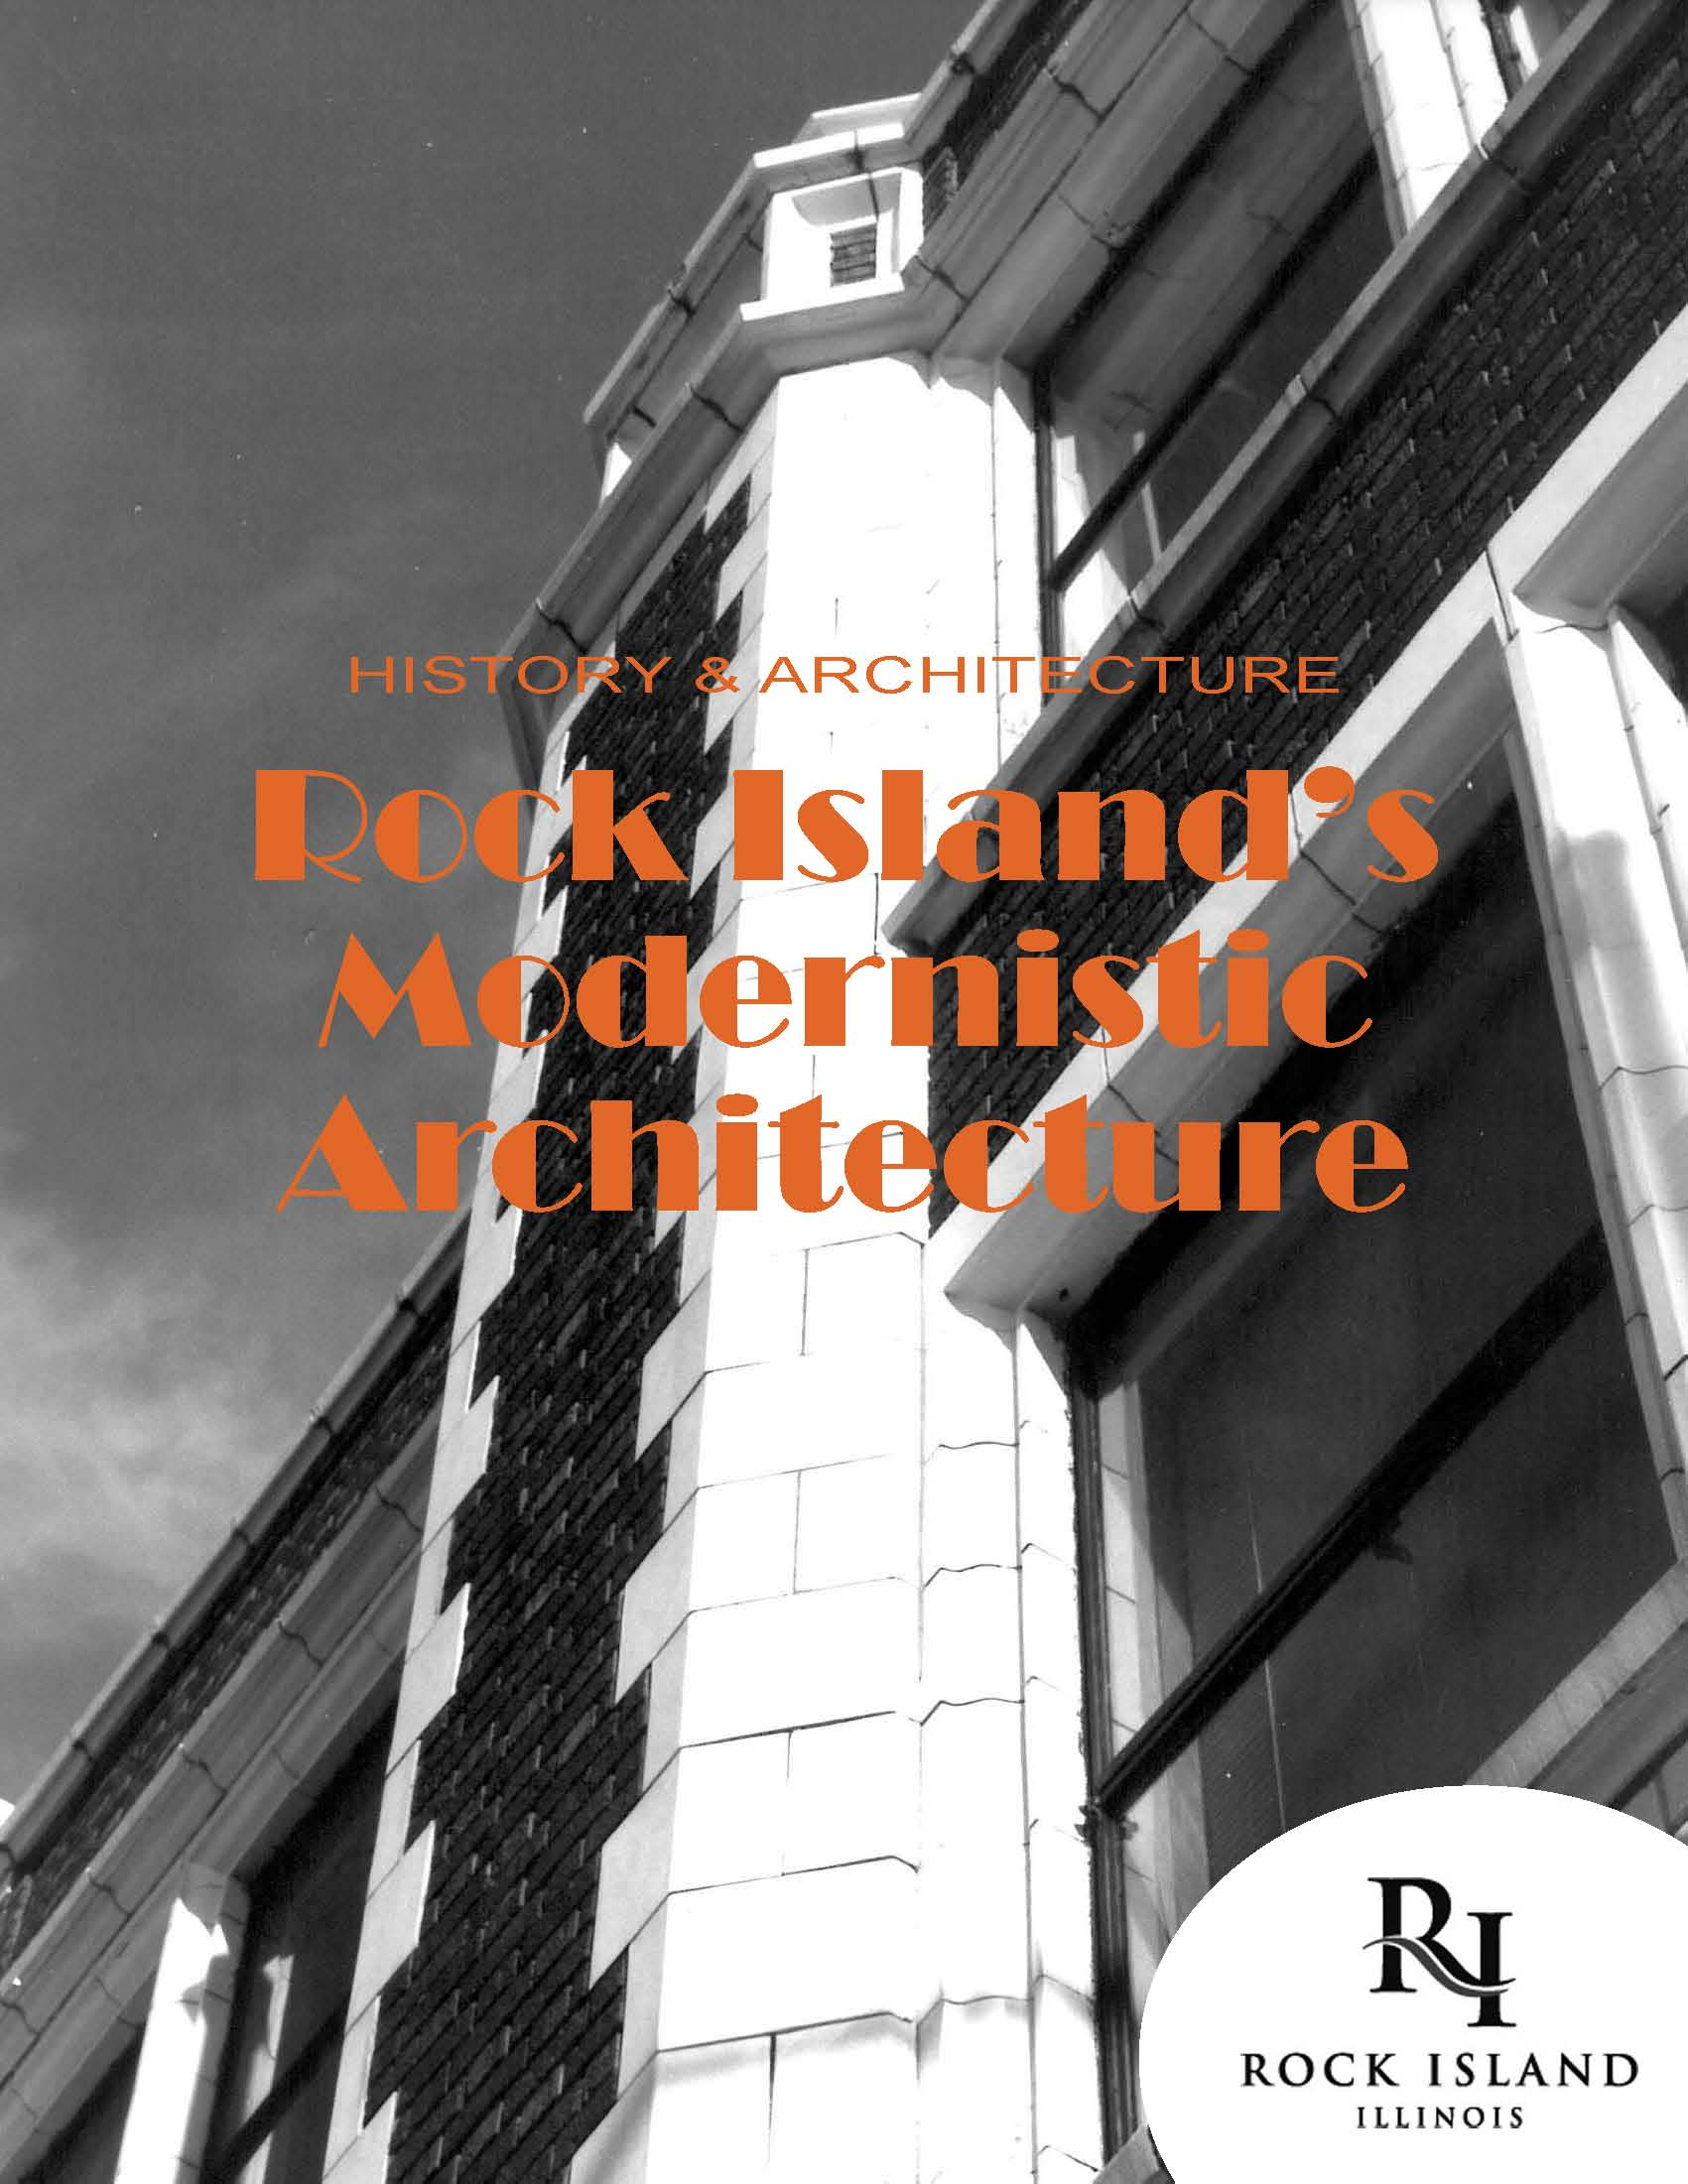 Rock Island Modernistic Architecture Brochure Cover